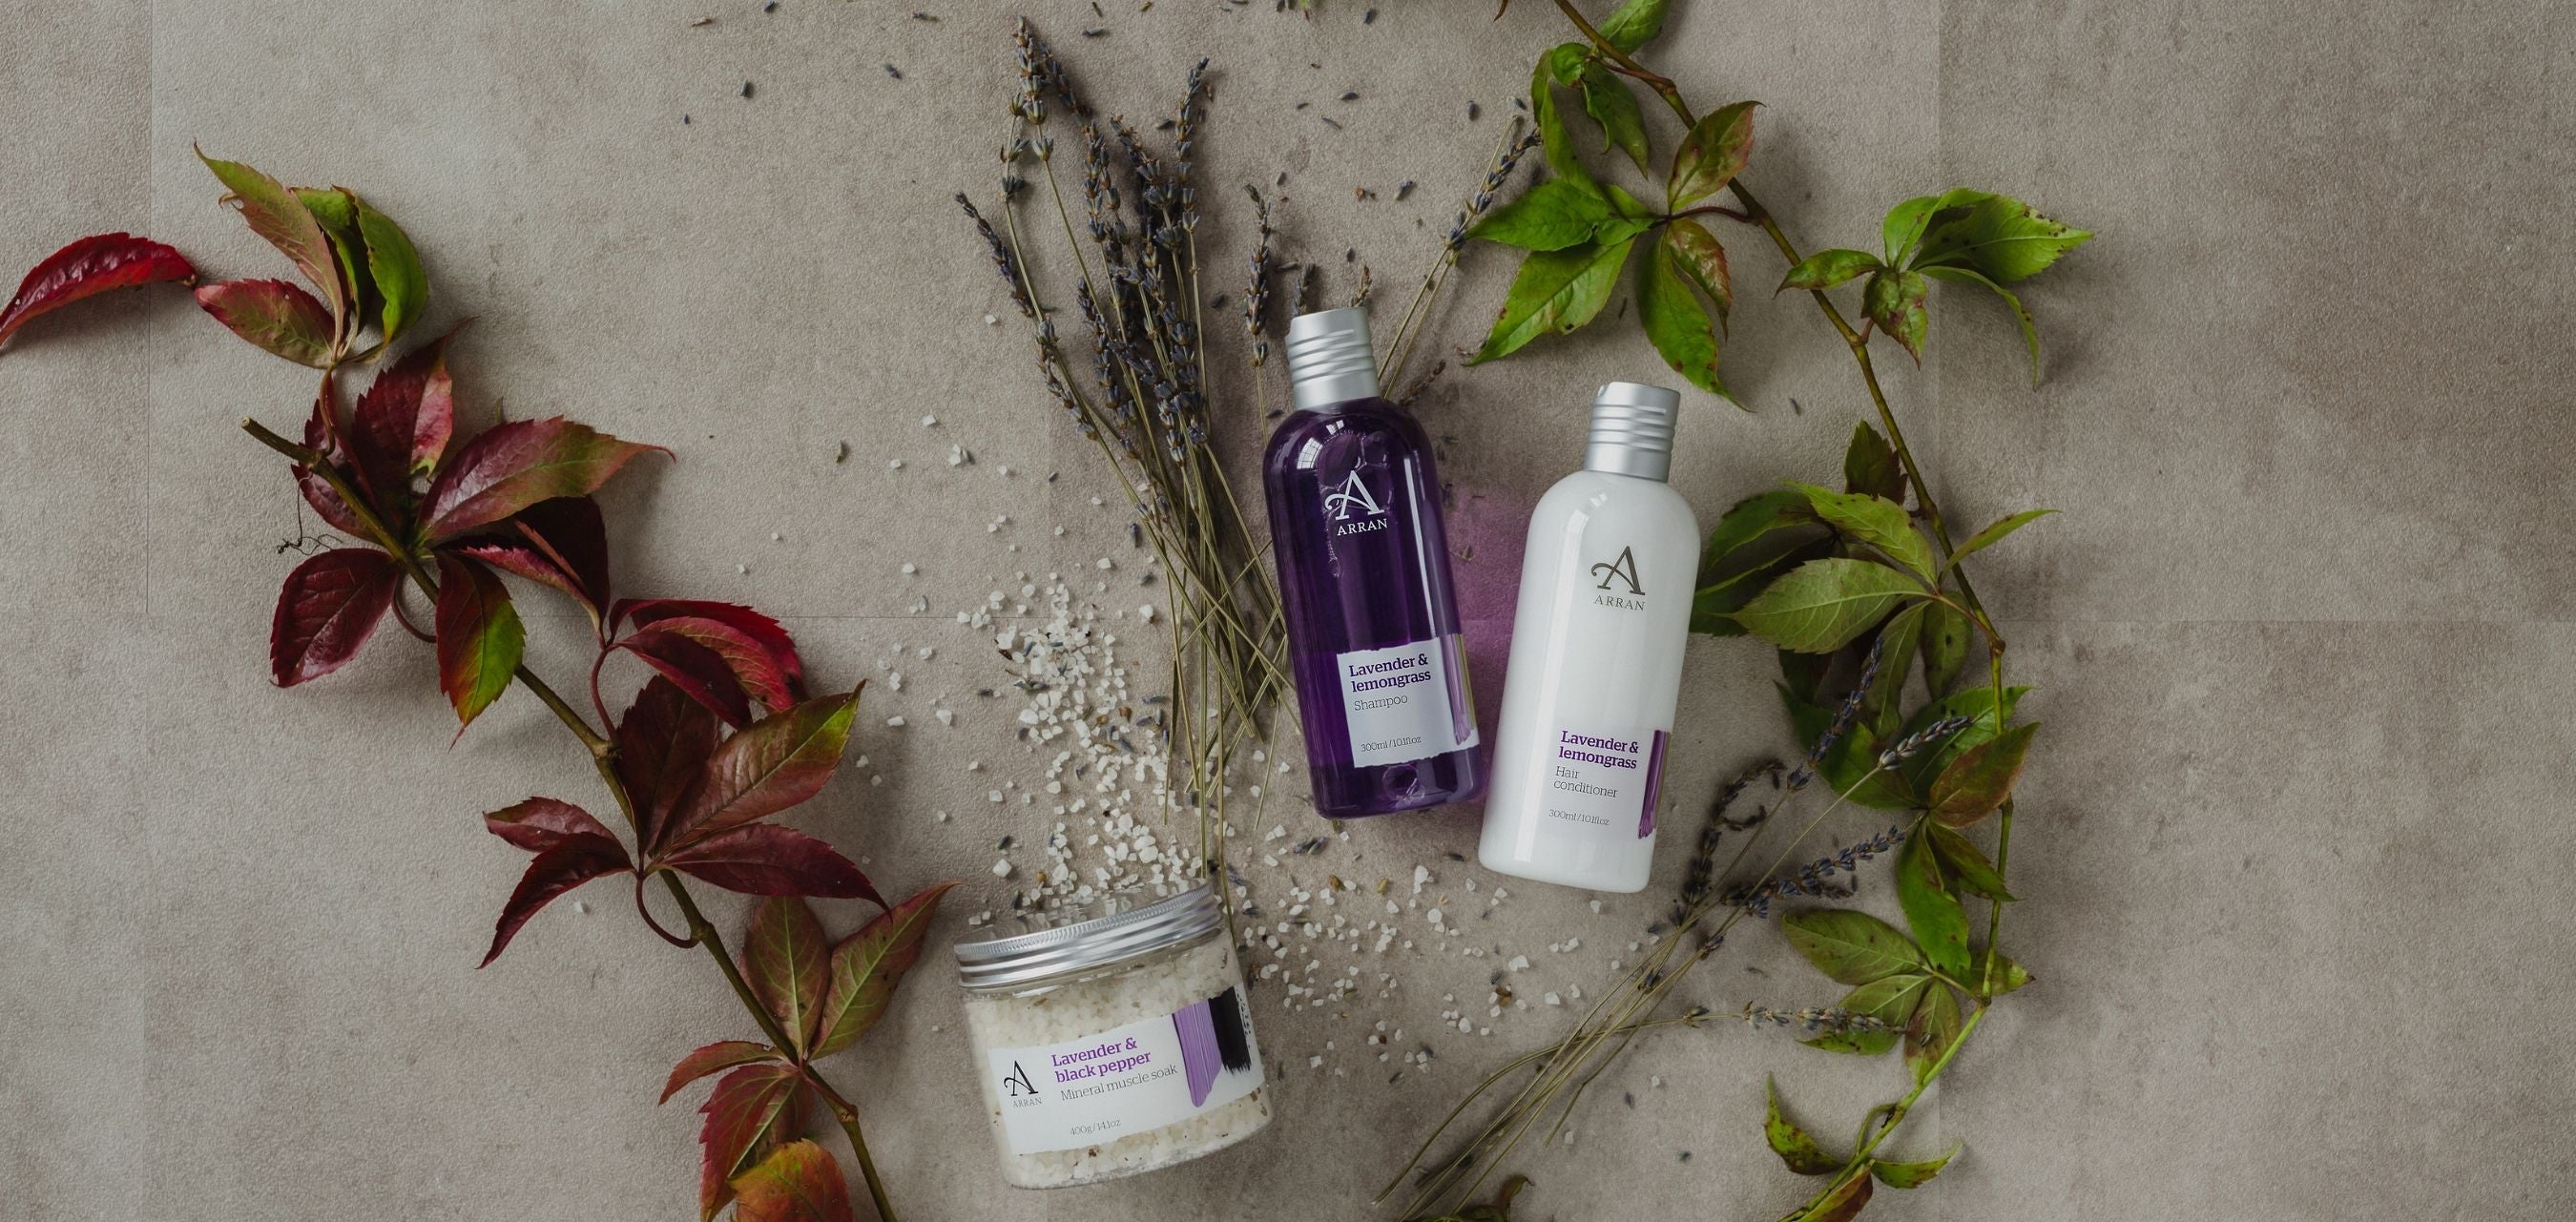 Lavender Shampoo, Conditioner and Bath Salts on grey concrete surrounded by green foliage.